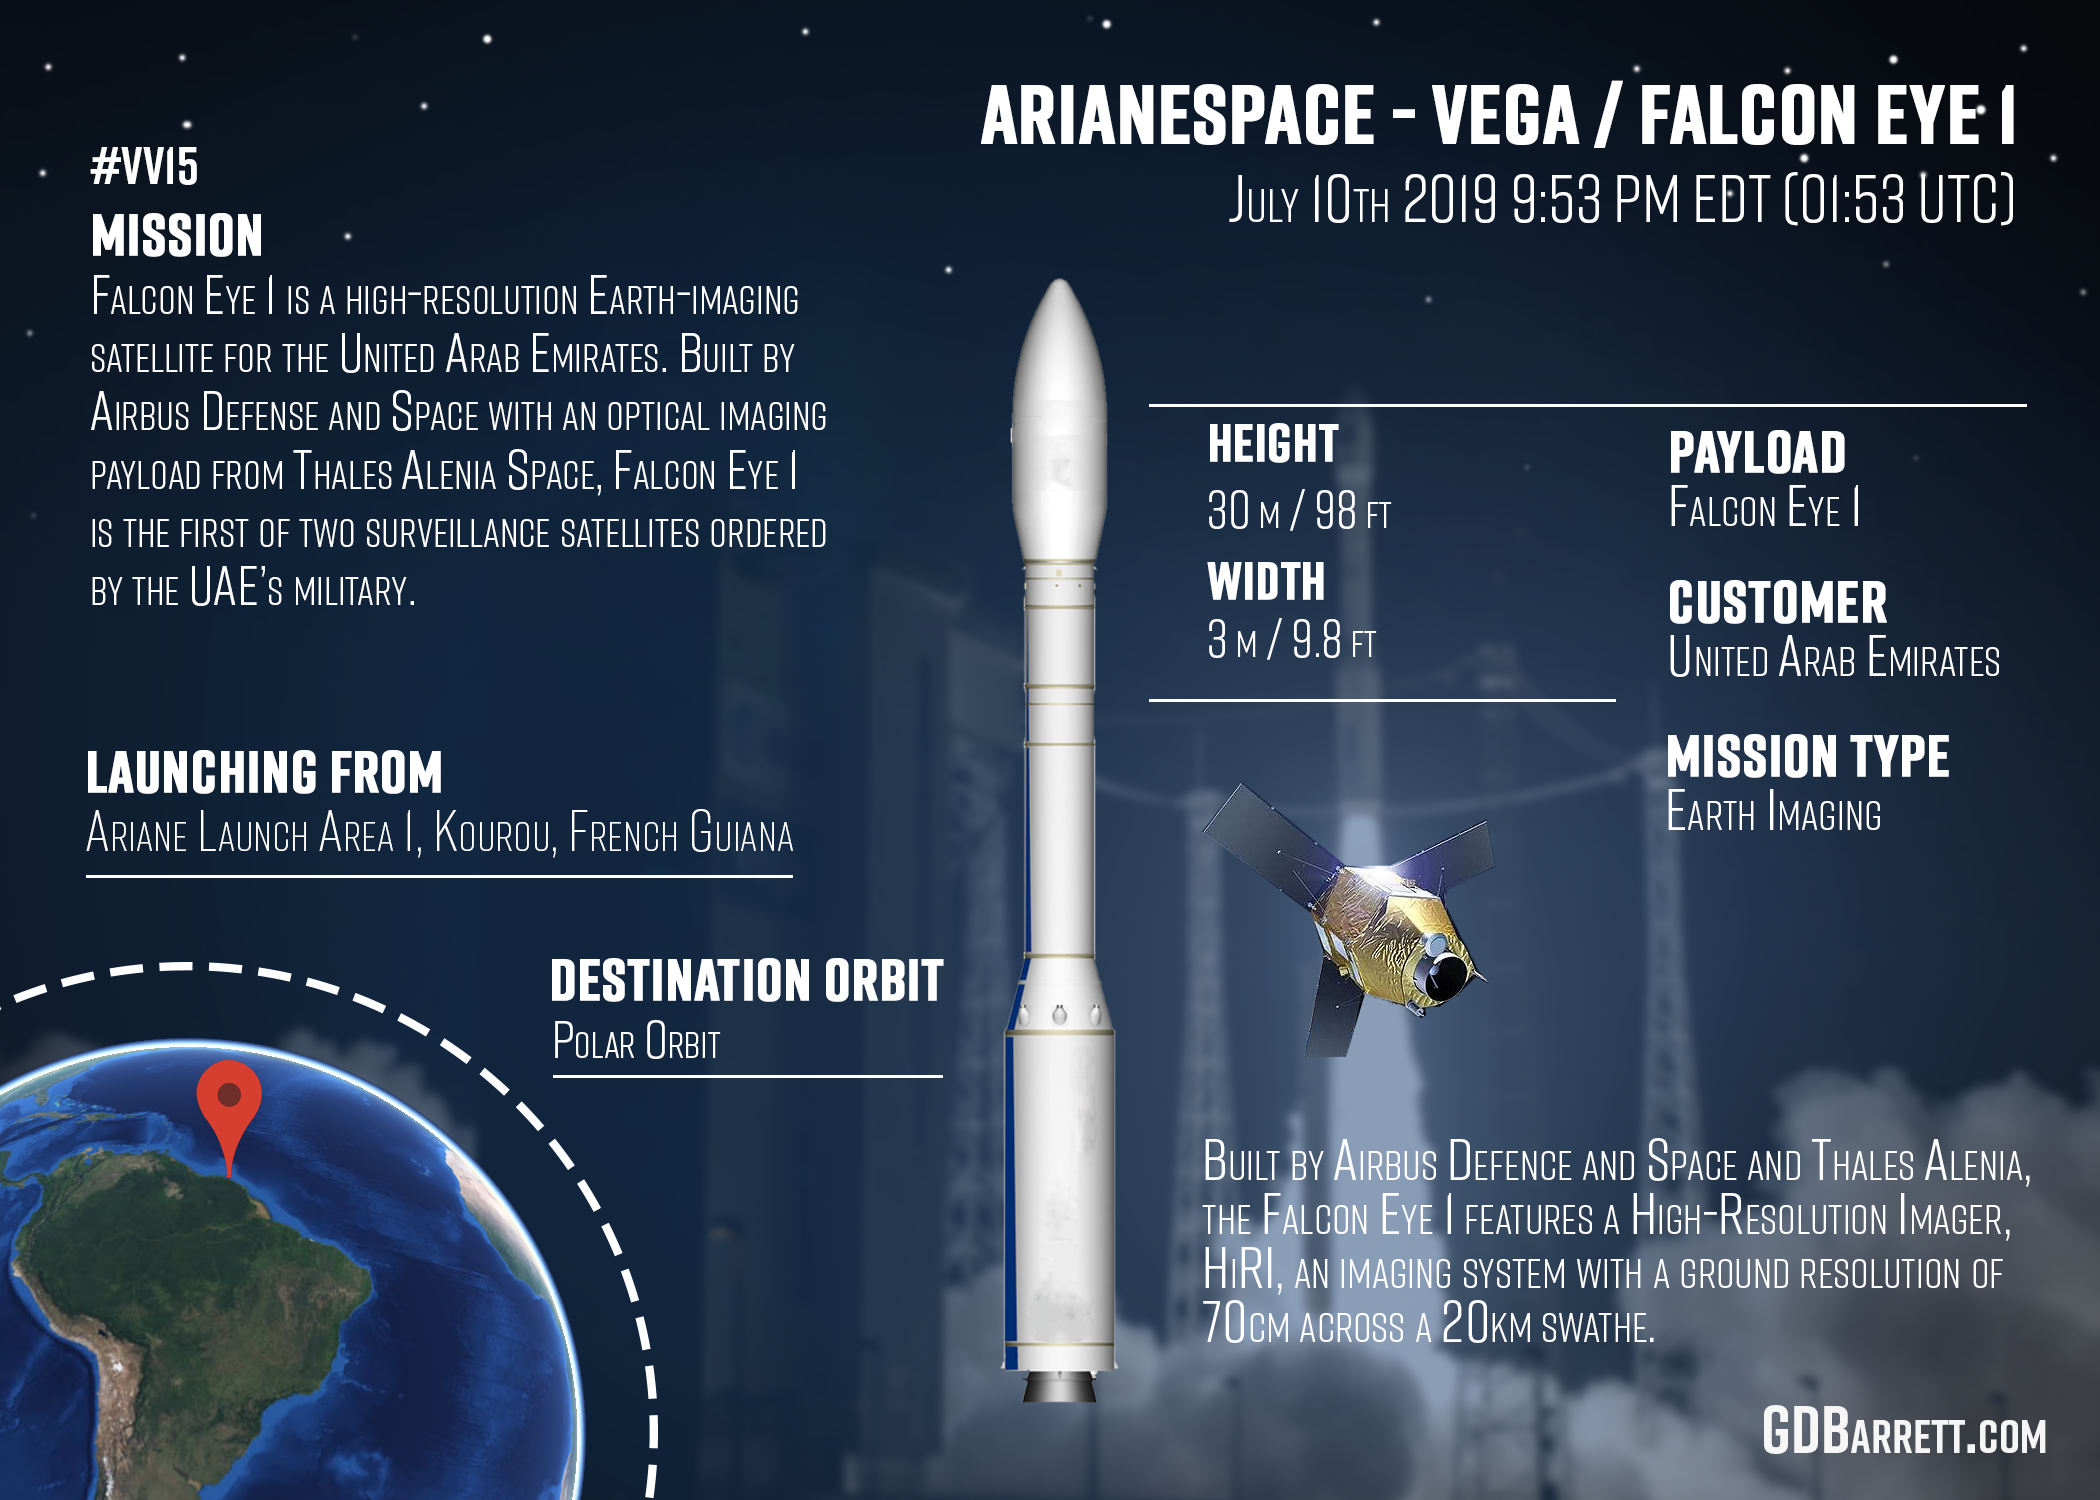 Arianespace - Vega / Falcon Eye 1